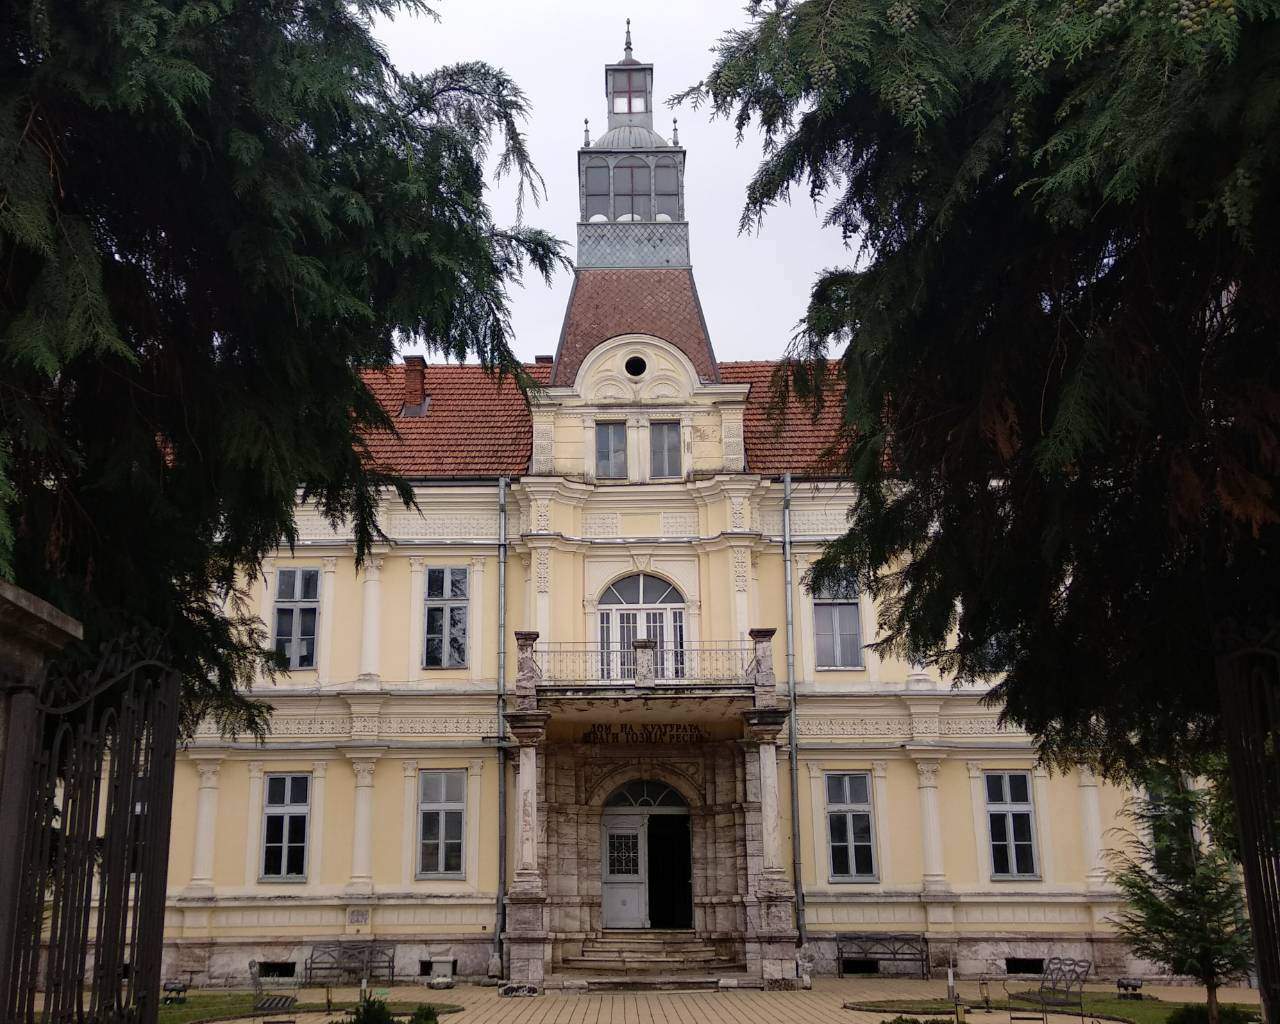 The palace in the small town